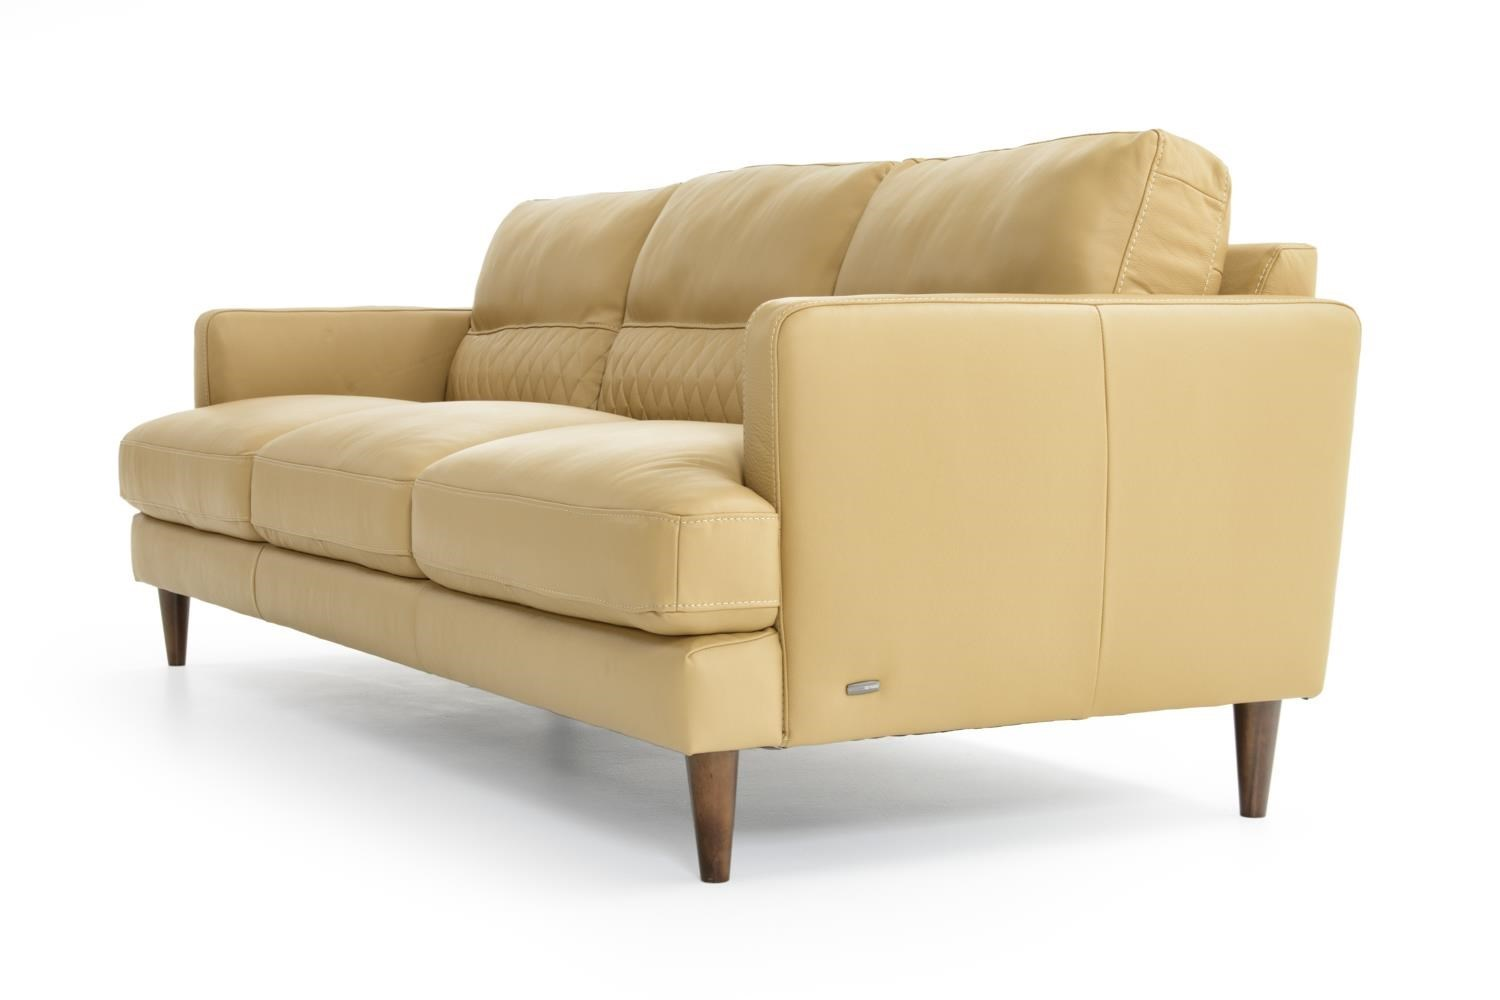 natuzzi editions donatello b985064 15c7sp09 sofa with textured lower back  sc 1 st  bedfordshire.us & Natuzzi Furniture.Paglia Ii Full Leather Sofa Bed By Natuzzi ... islam-shia.org